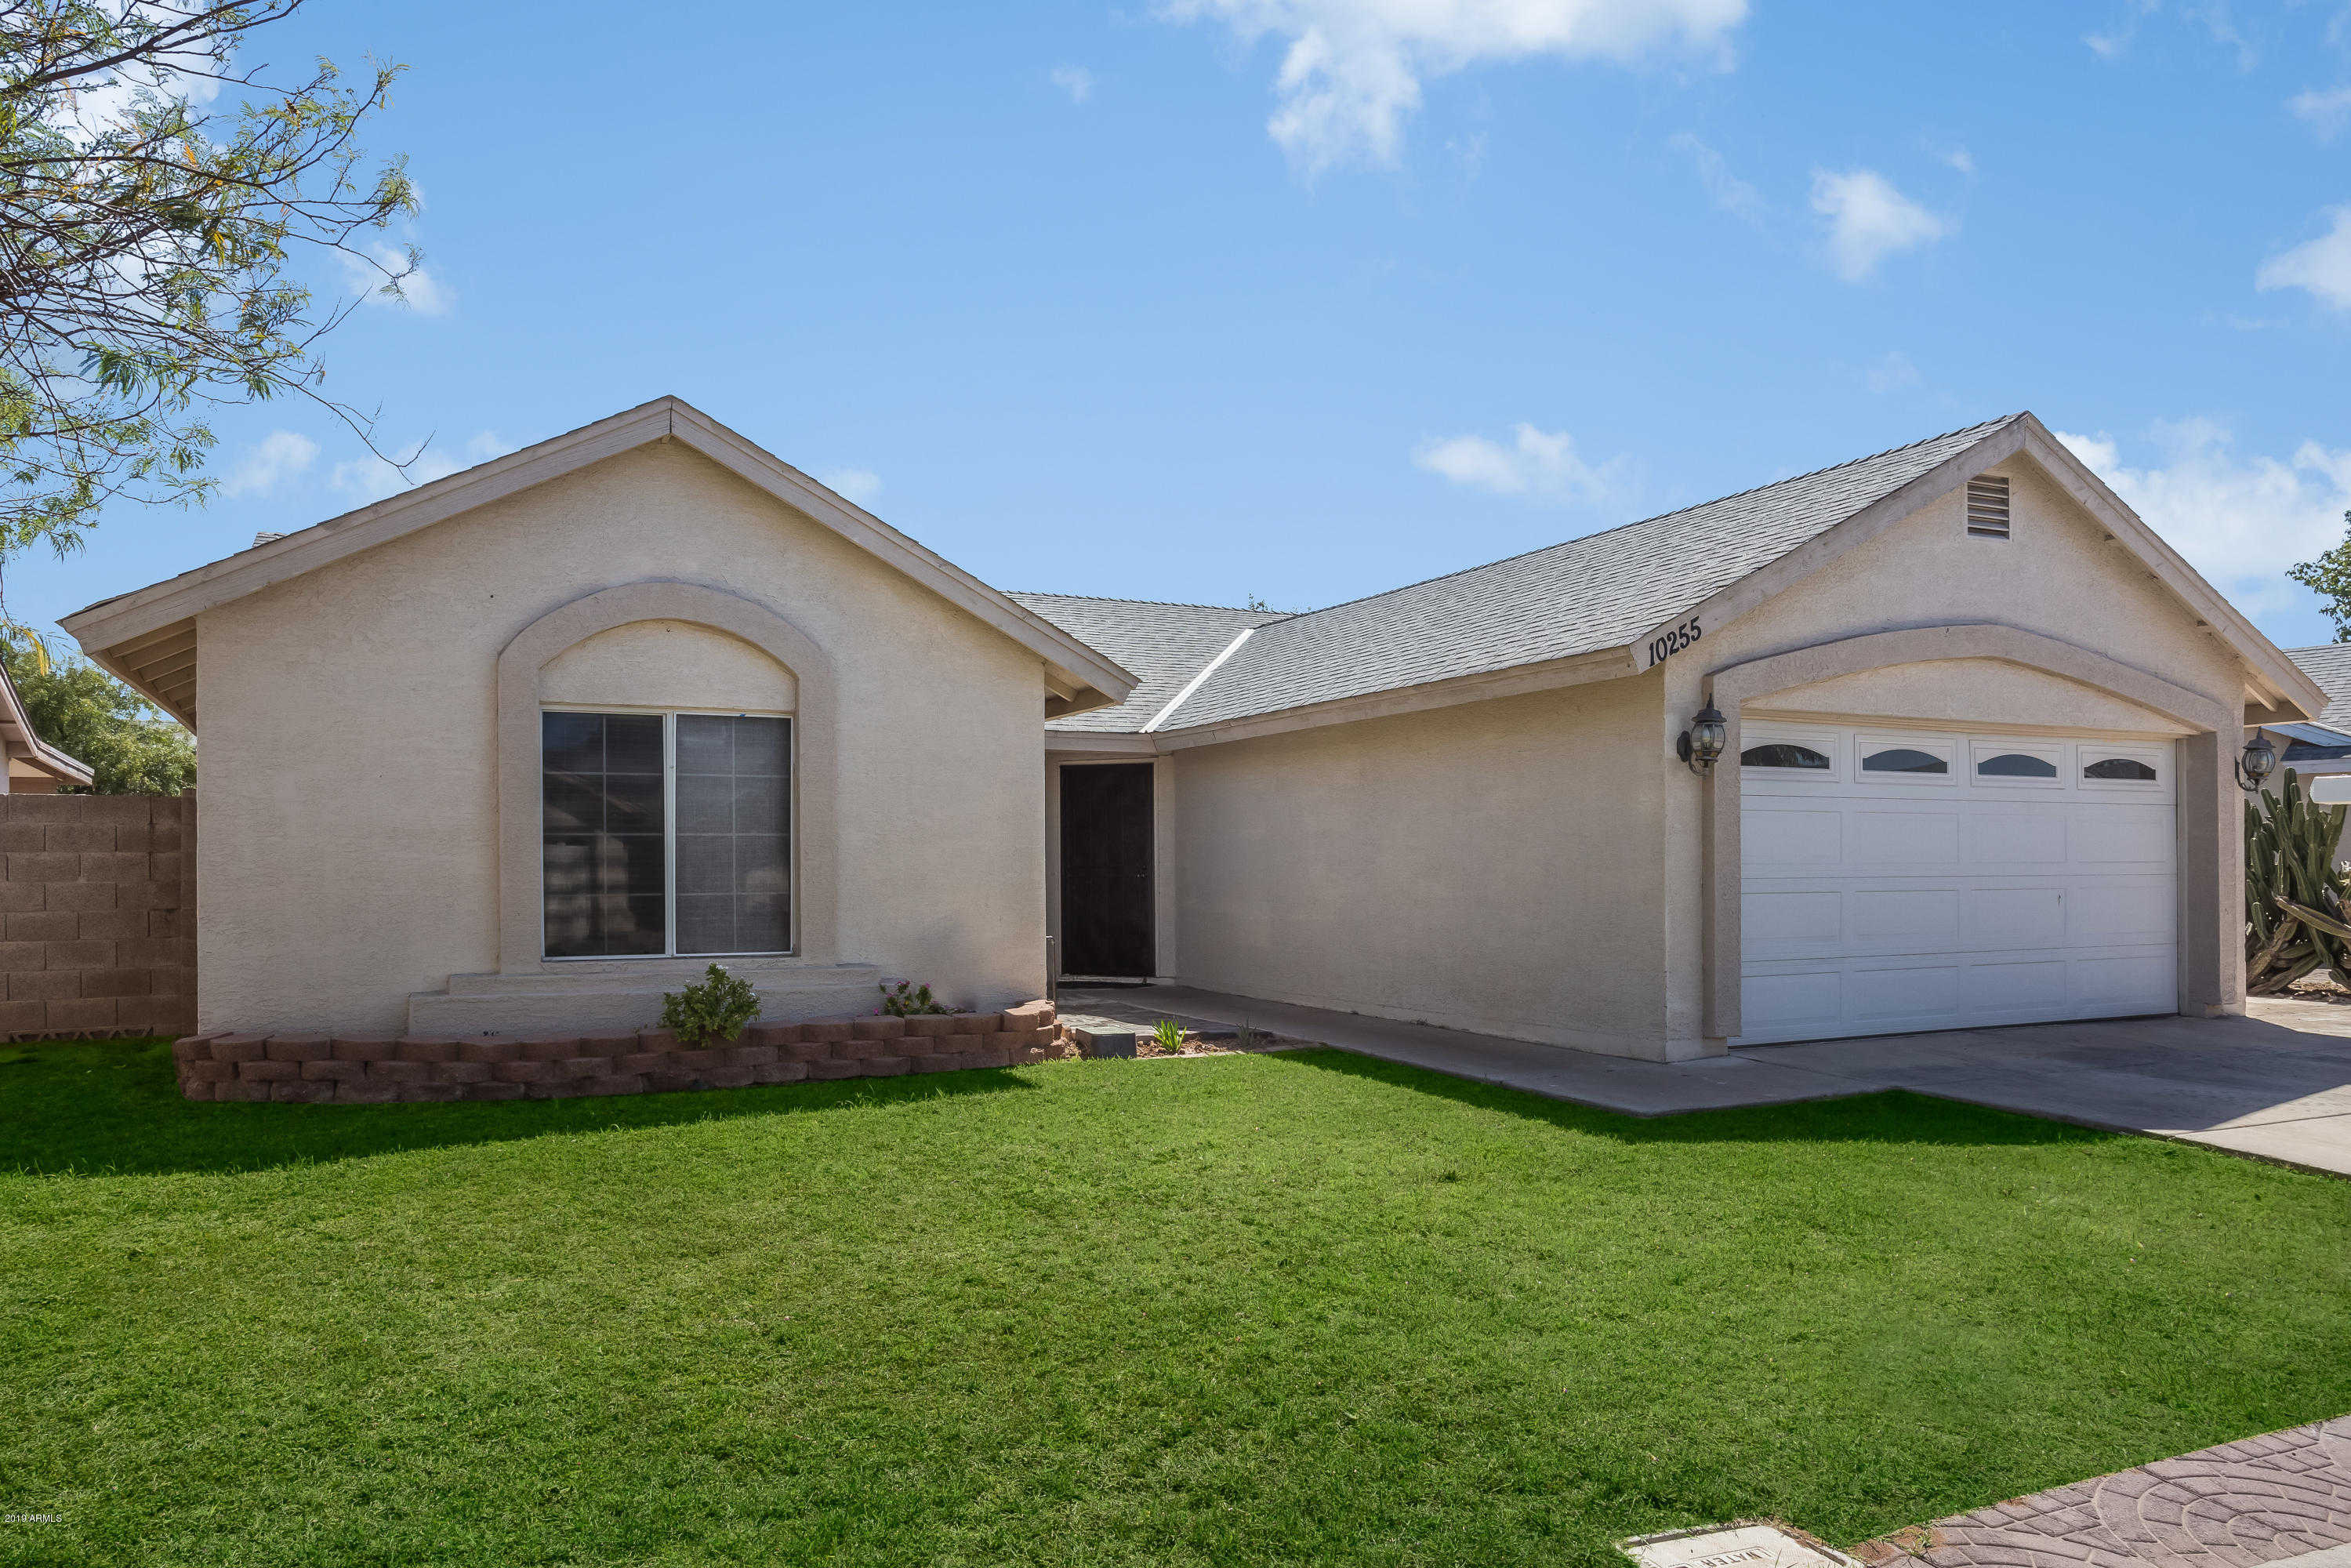 $229,000 - 3Br/2Ba - Home for Sale in Camelback Greens 1 Lot 1-226 Tr A-t, Glendale